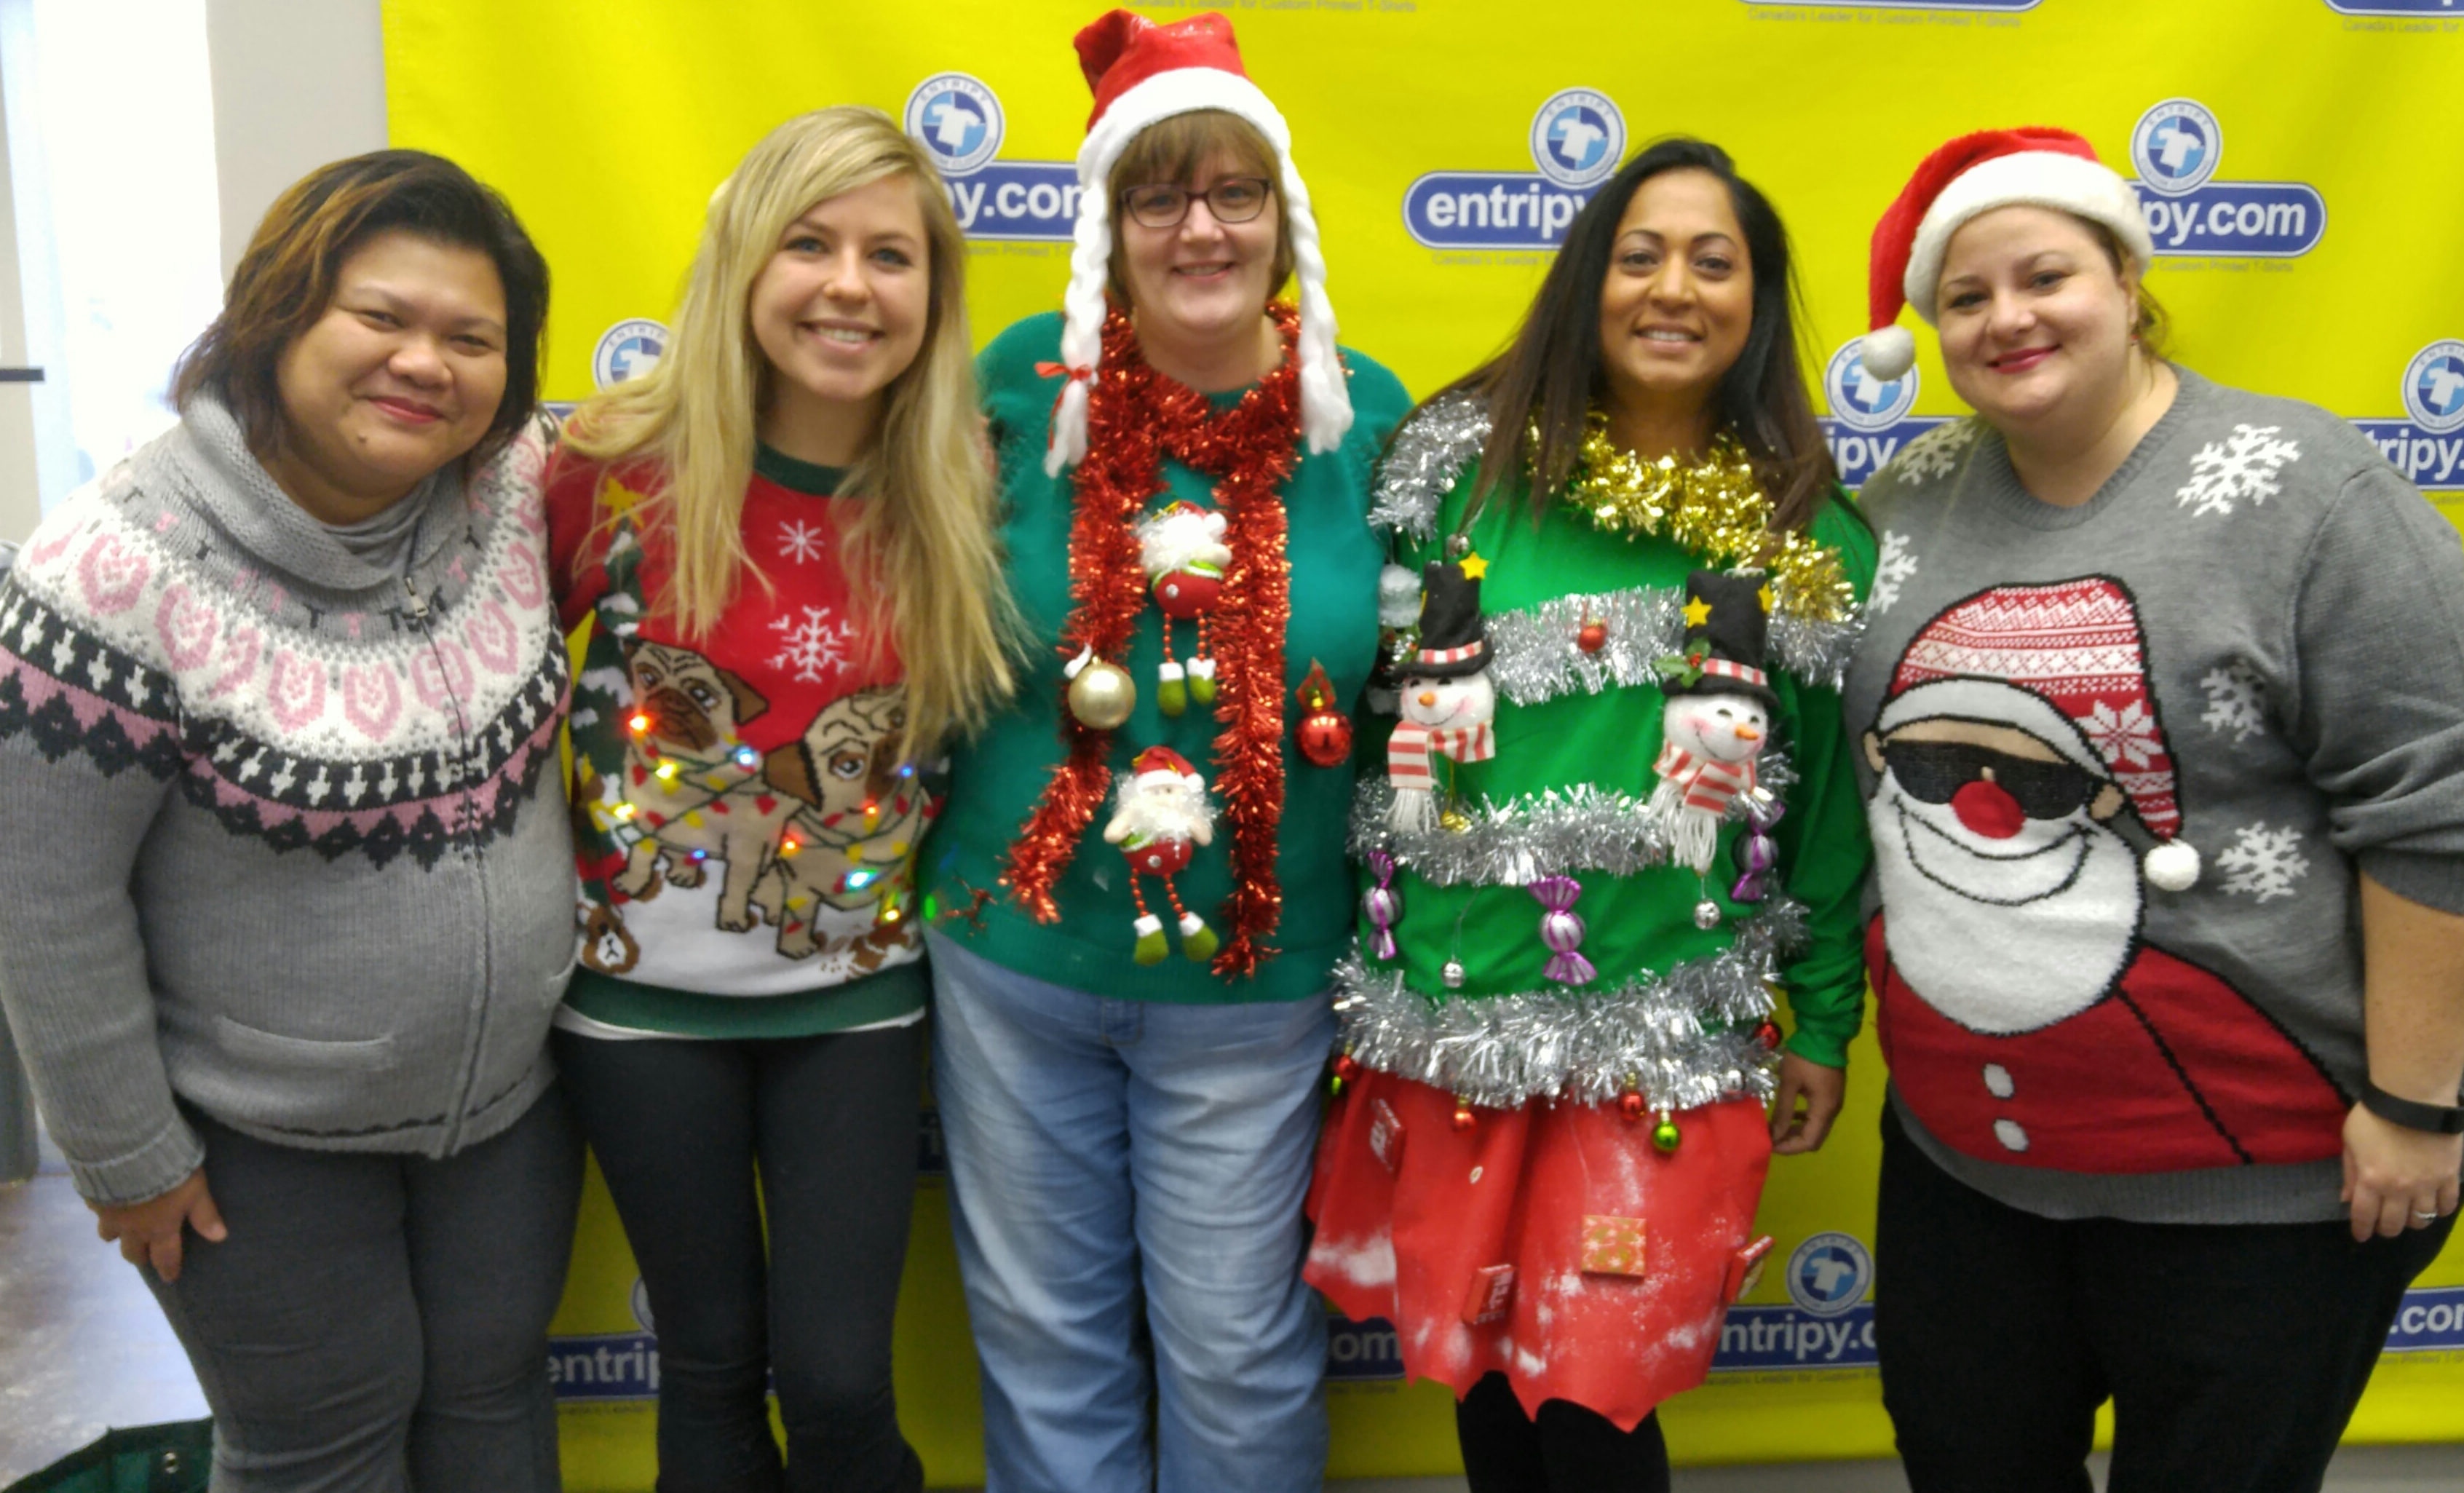 Employees wearing christmas sweaters for the ugly sweater contest.